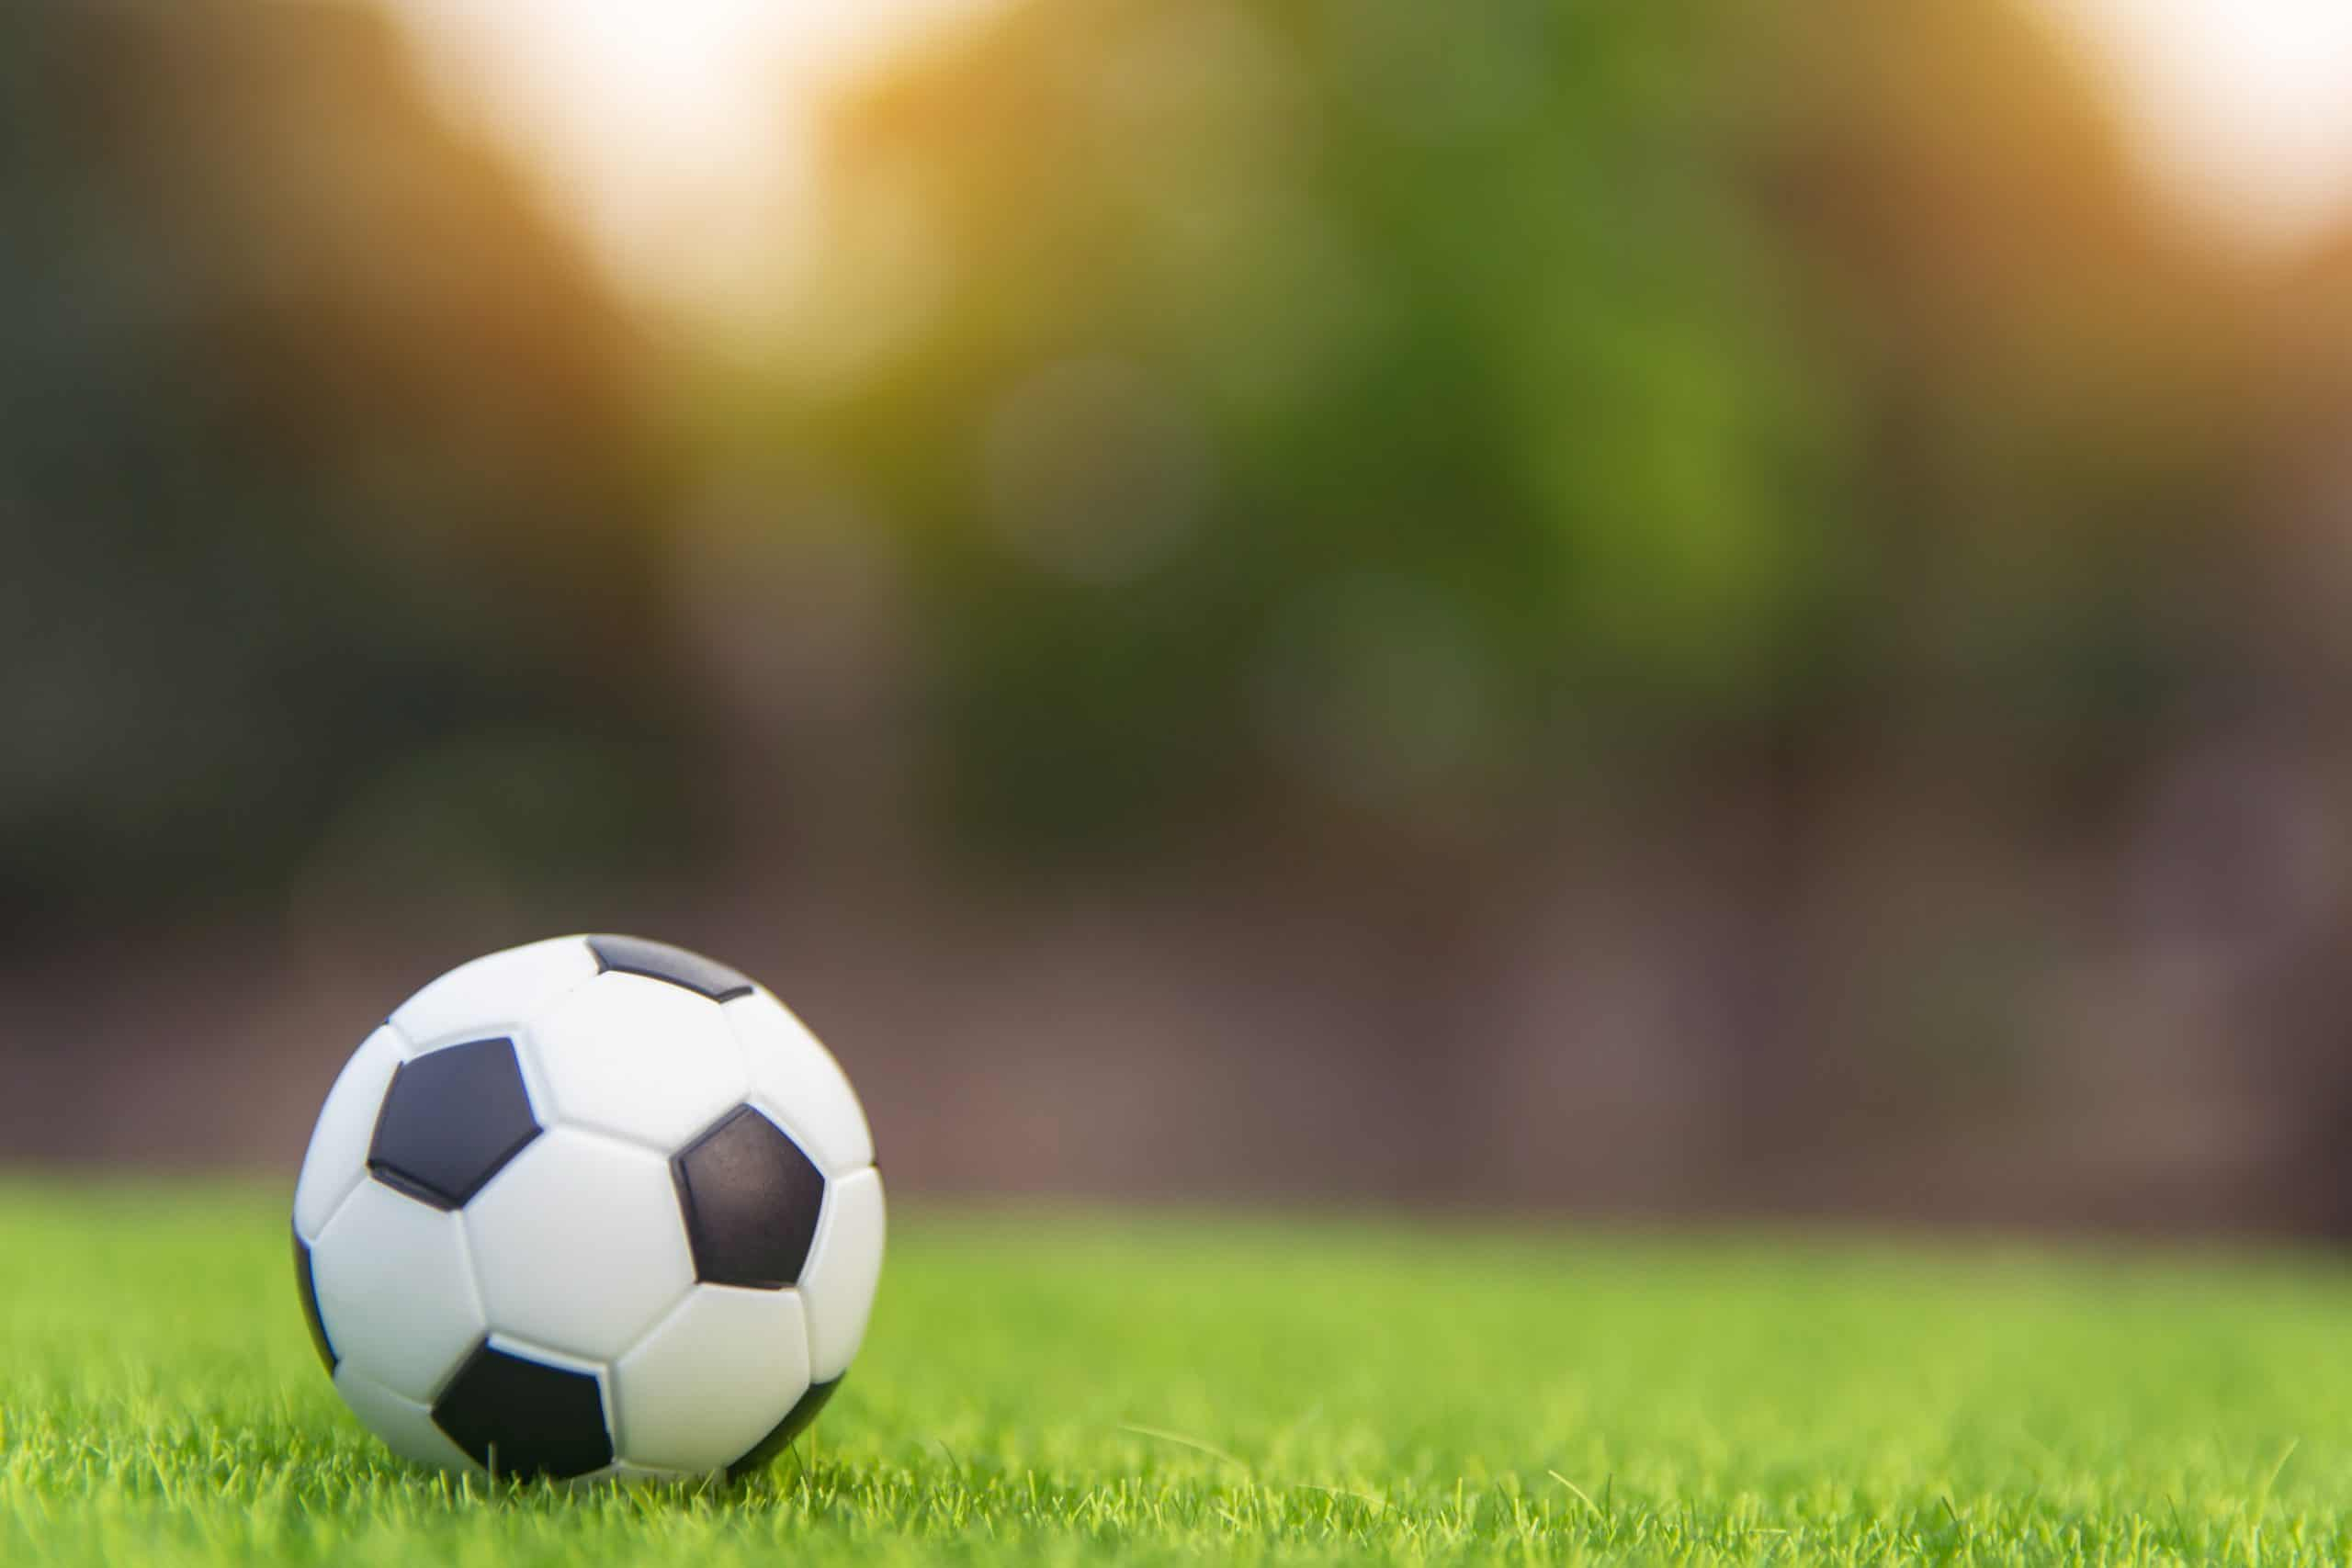 Few Interesting Facts That A Soccer Enthusiast Needs To Know